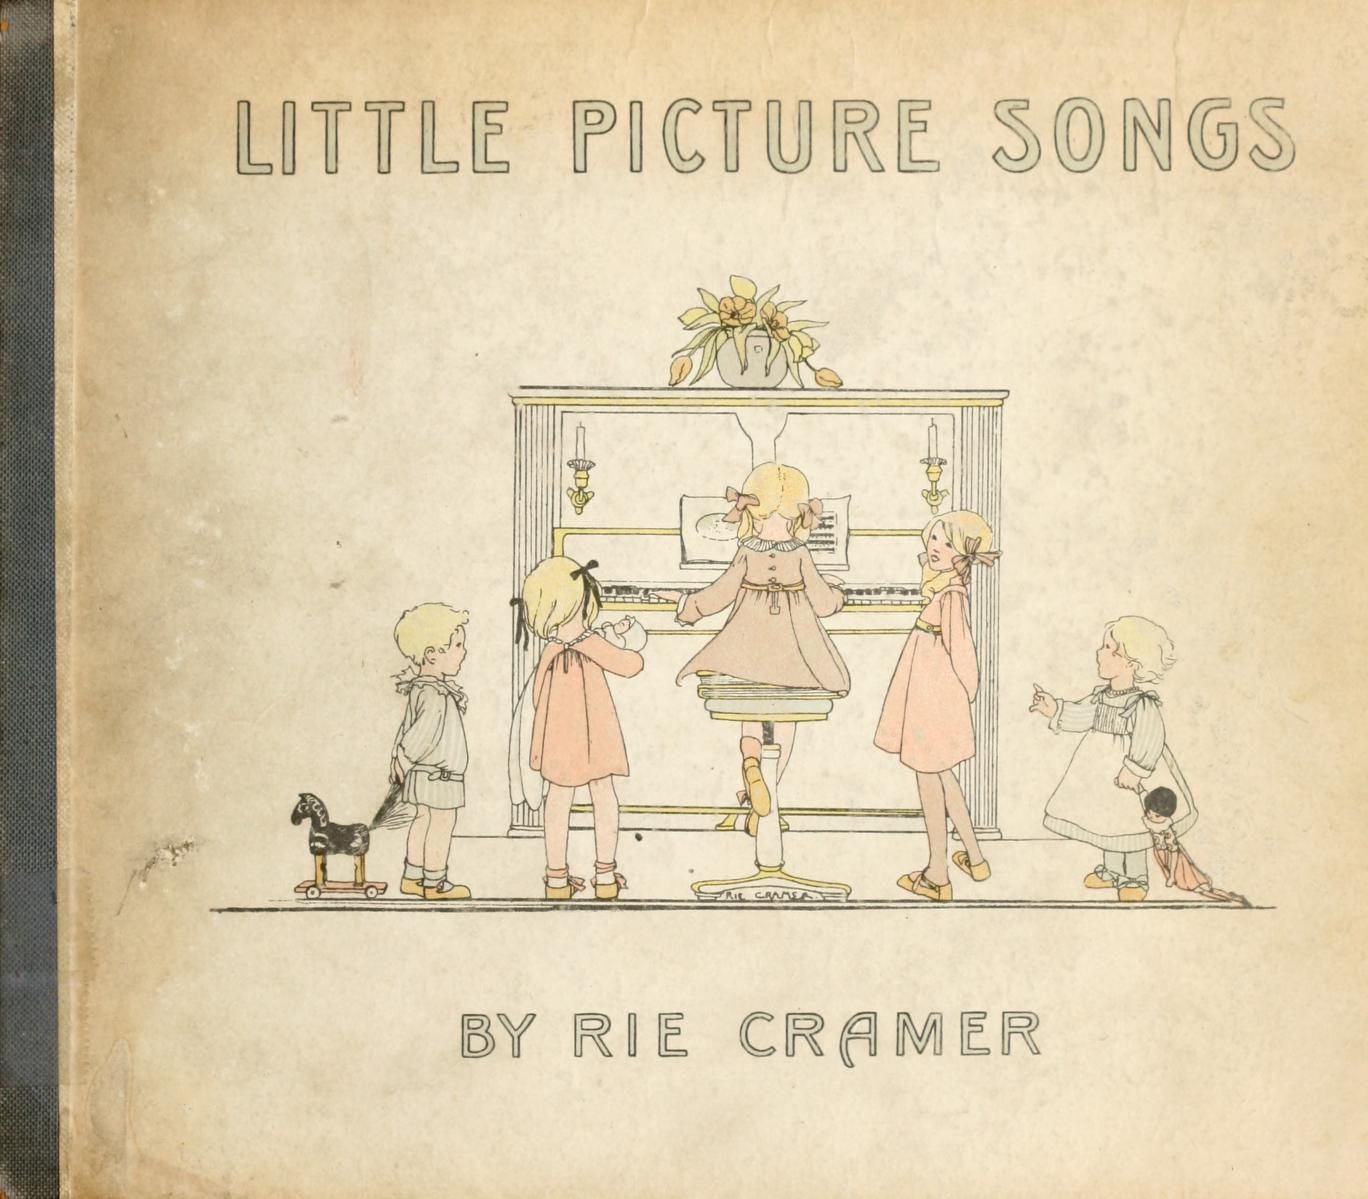 Little picture songs;